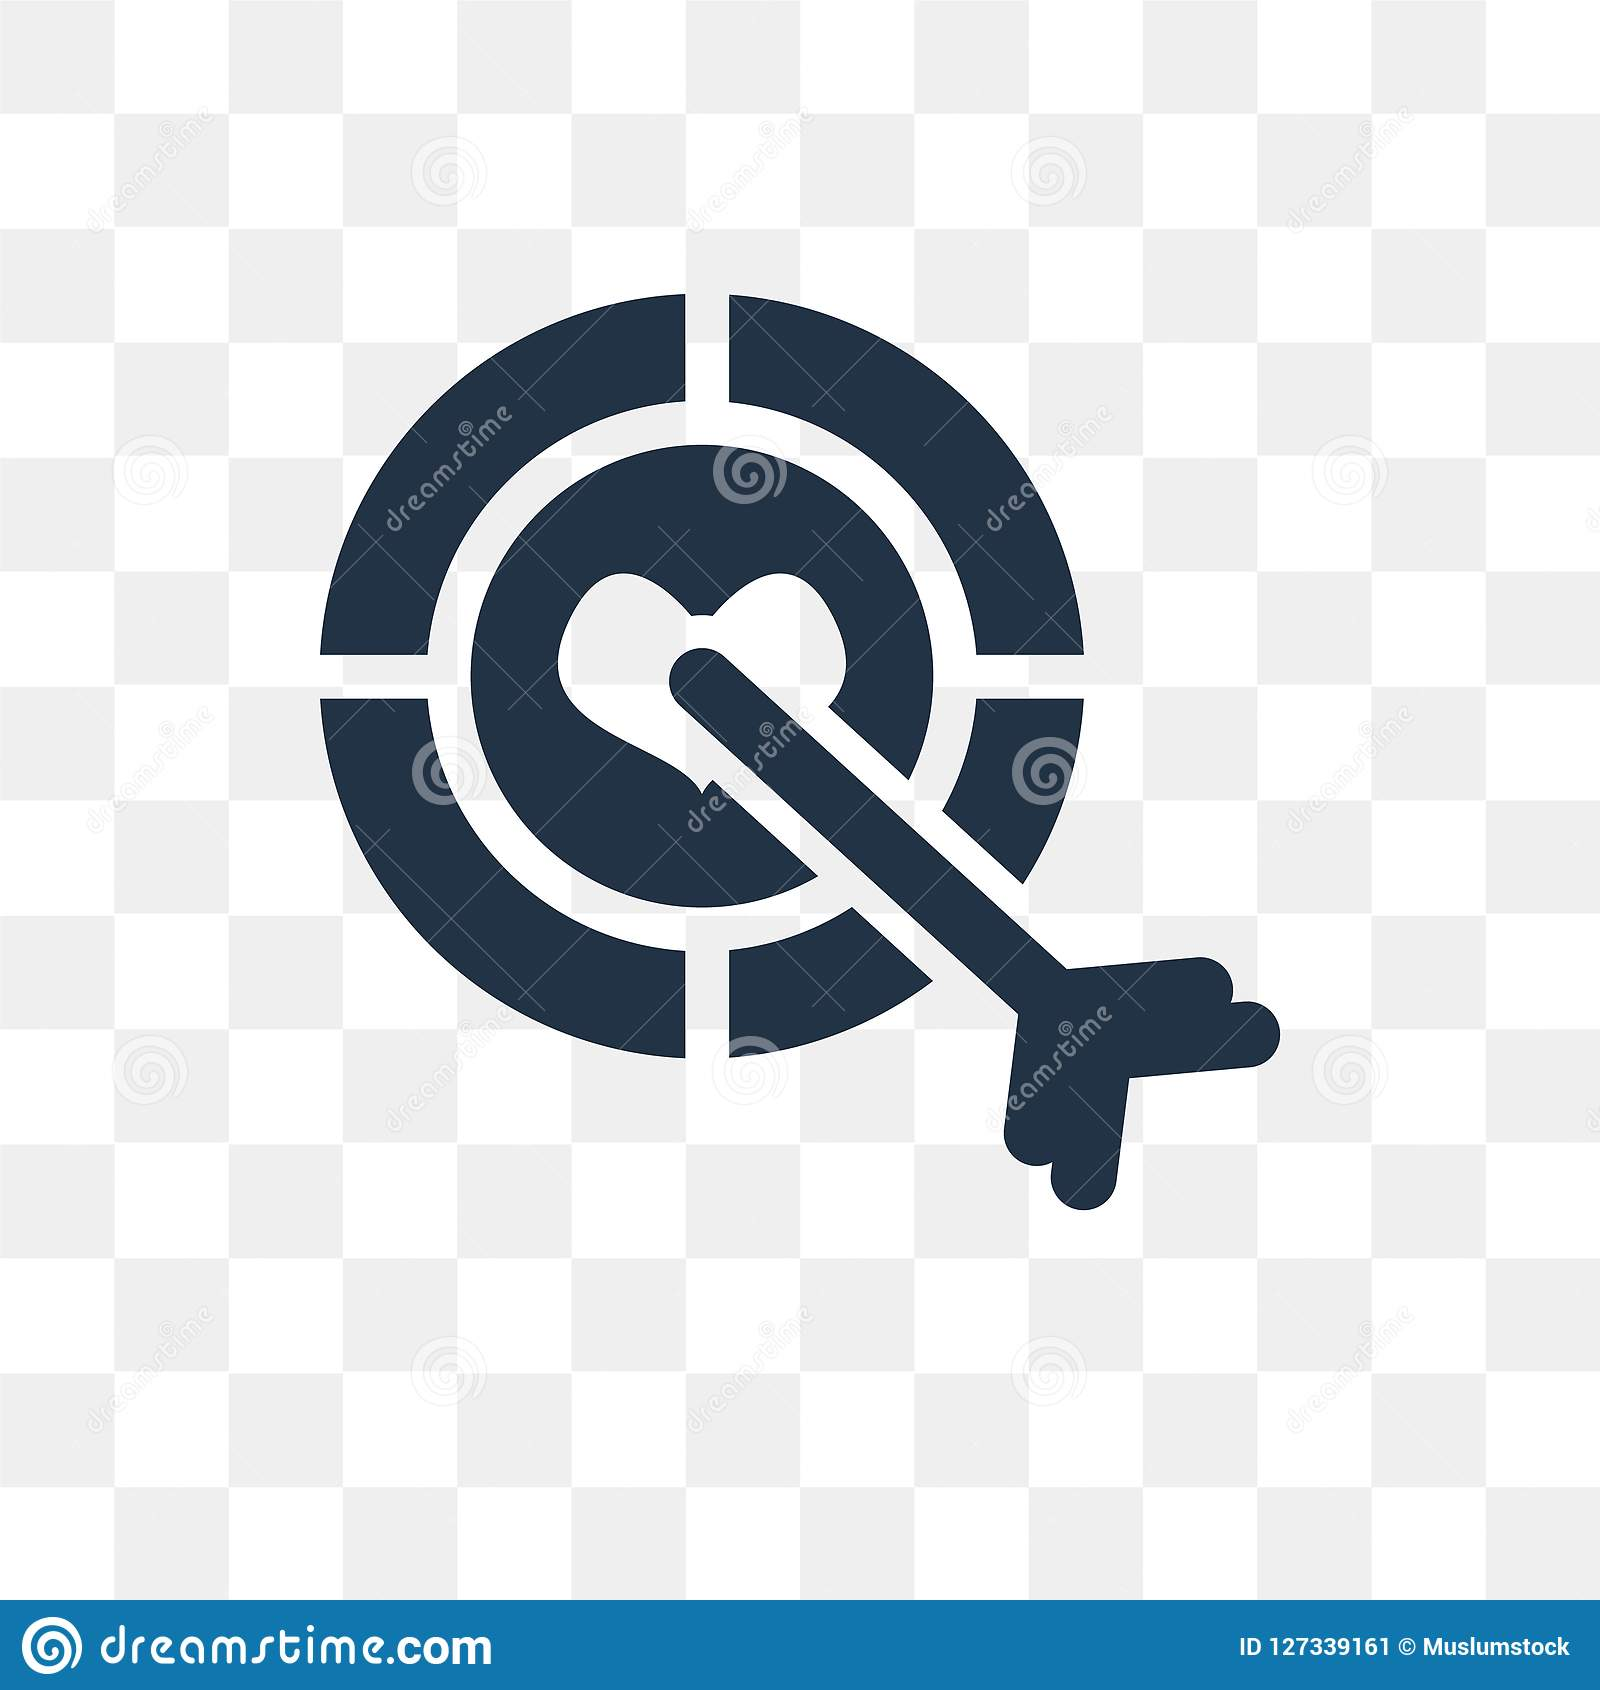 aim vector icon isolated on transparent background aim transpa stock vector illustration of accuracy crosshairs 127339161 https www dreamstime com aim vector icon isolated transparent background aim transpa aim vector icon isolated transparent background aim transparency image127339161